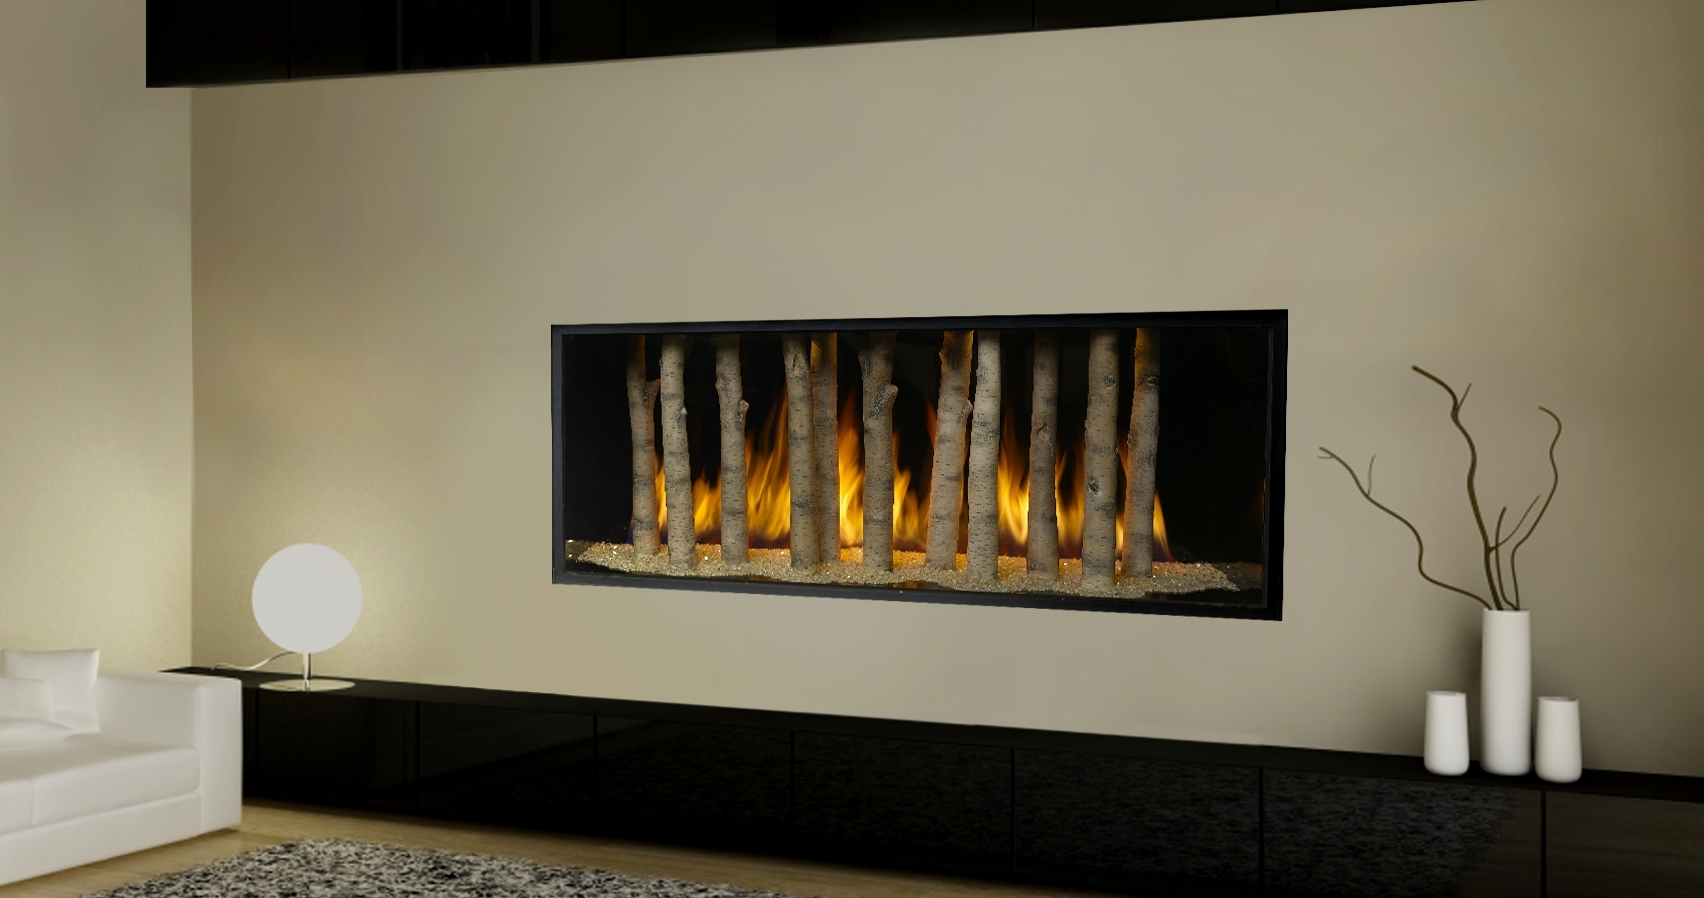 Adorable Design Of The White Wall Added With Whtie Sofa And Black Wooden Shelves Ideas With Modern Gas Fireplace Ideas